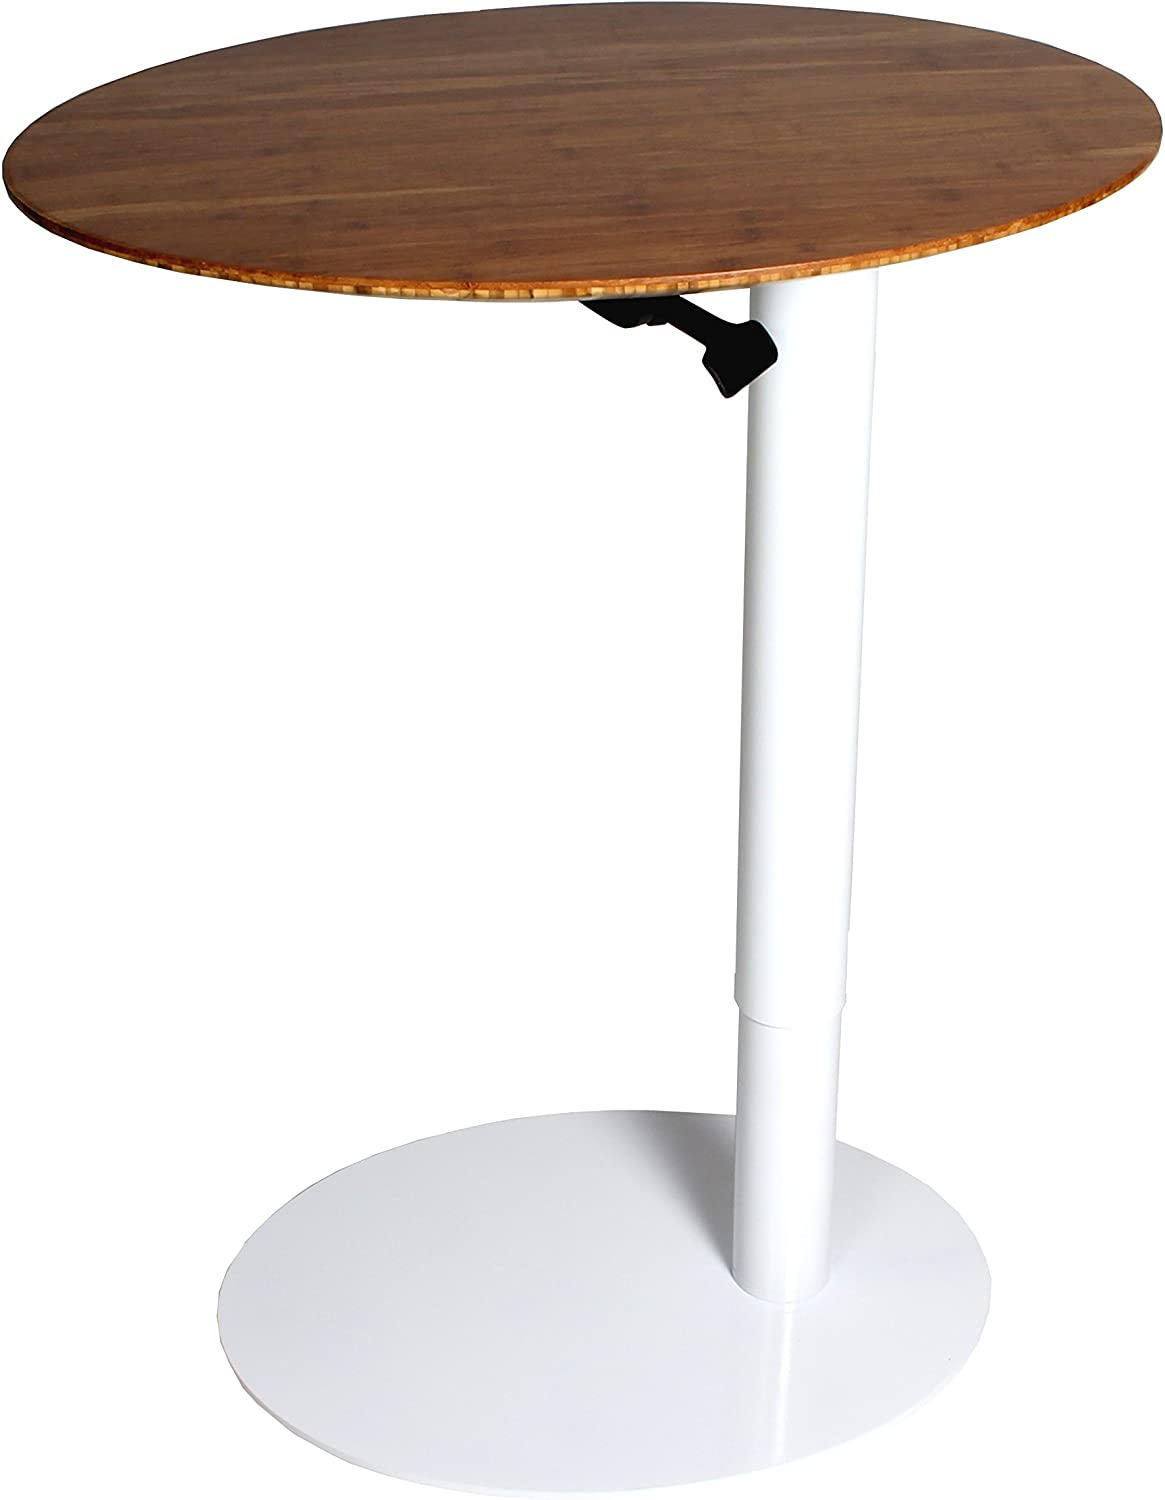 """Powder-Coated Steel Base and Environmentally Friendly Bamboo Tabletop Frasch 26/""""x20/"""" Oval Height Adjustable Caf/é//Bar Table Gas Piston"""